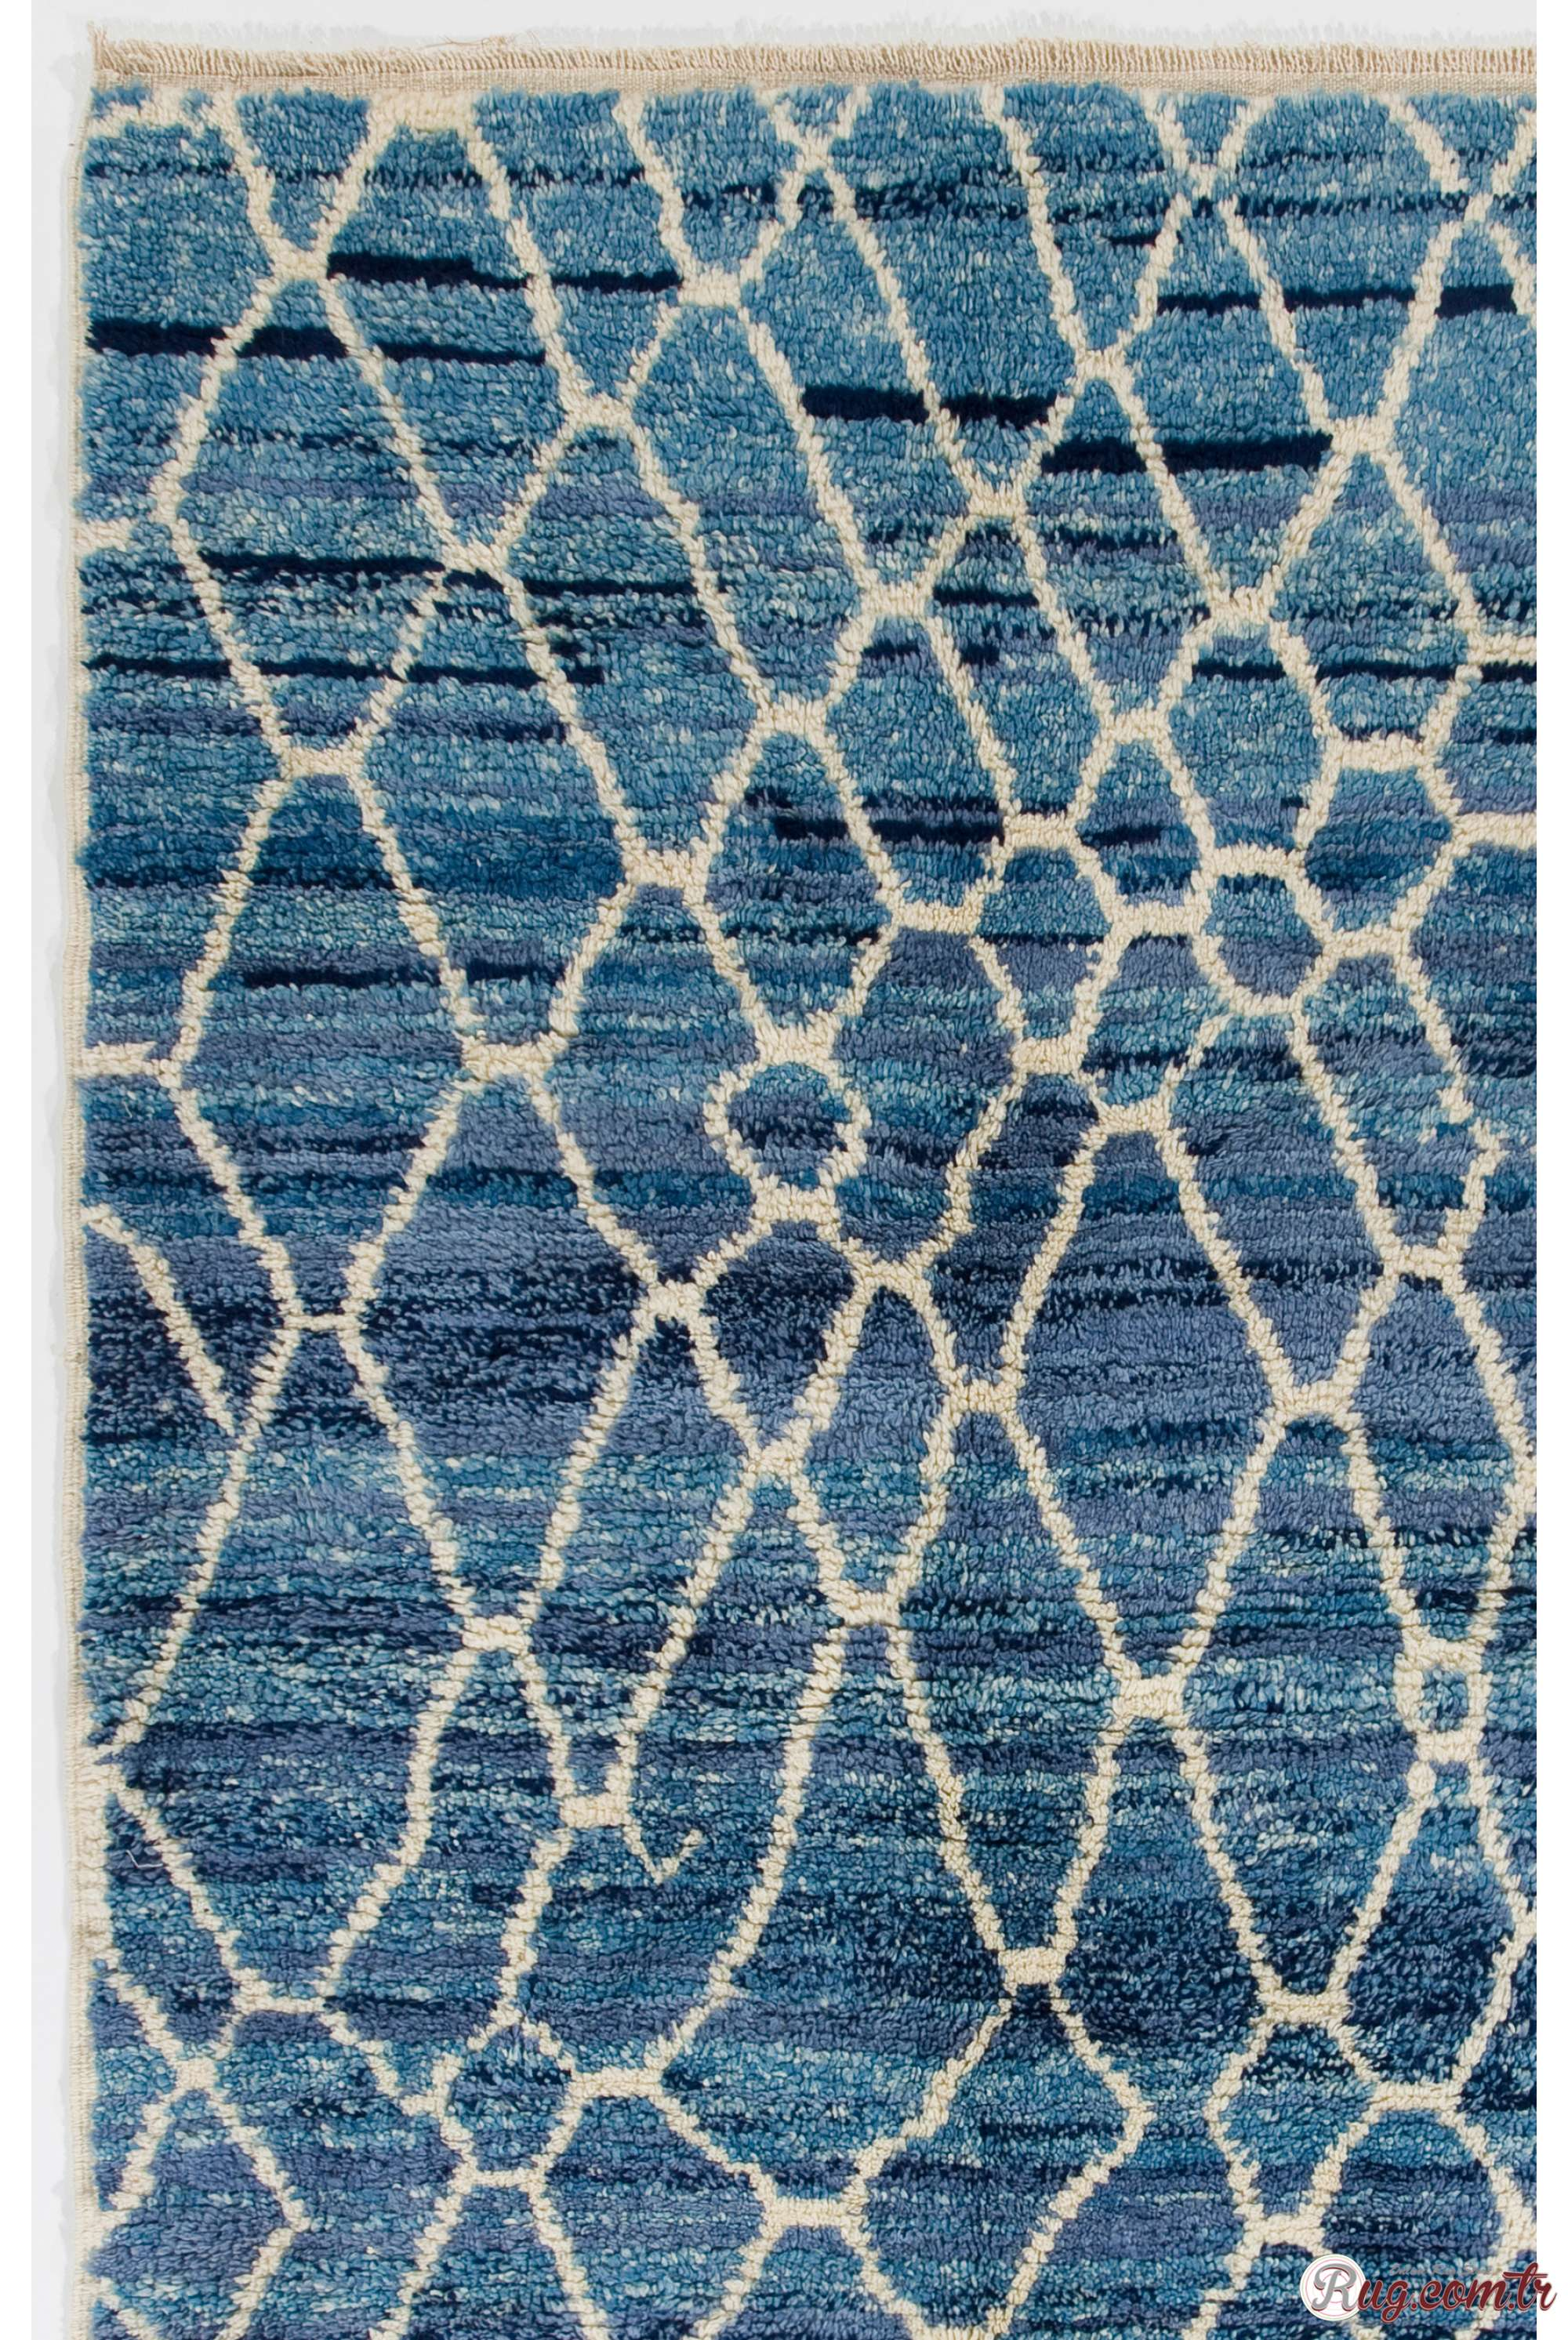 Air Force Blue Color Moroccan Berber Beni Ourain Design Rug With Beige Patterns And Shades Of